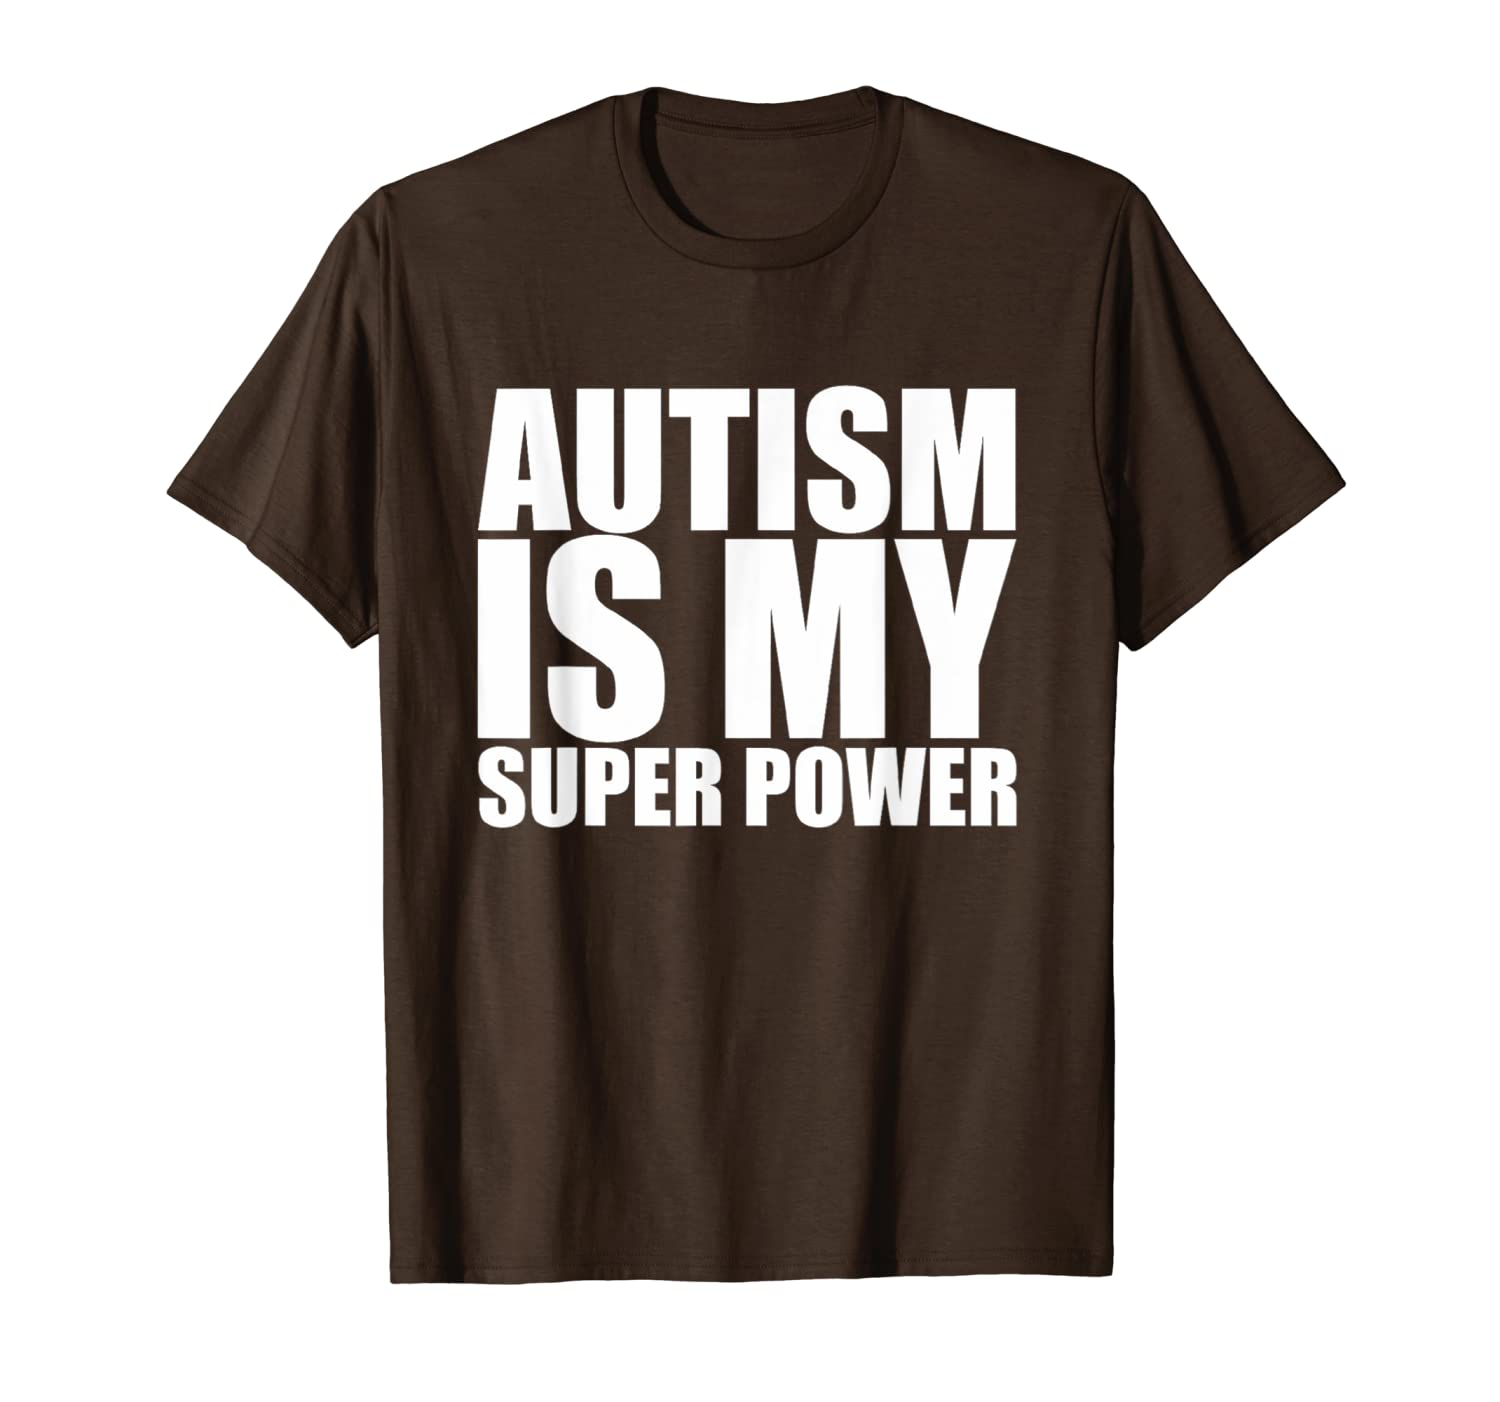 8fb5beaf879 Amazon.com: Autism Shirts: Autism is my superpower T-shirt: Clothing